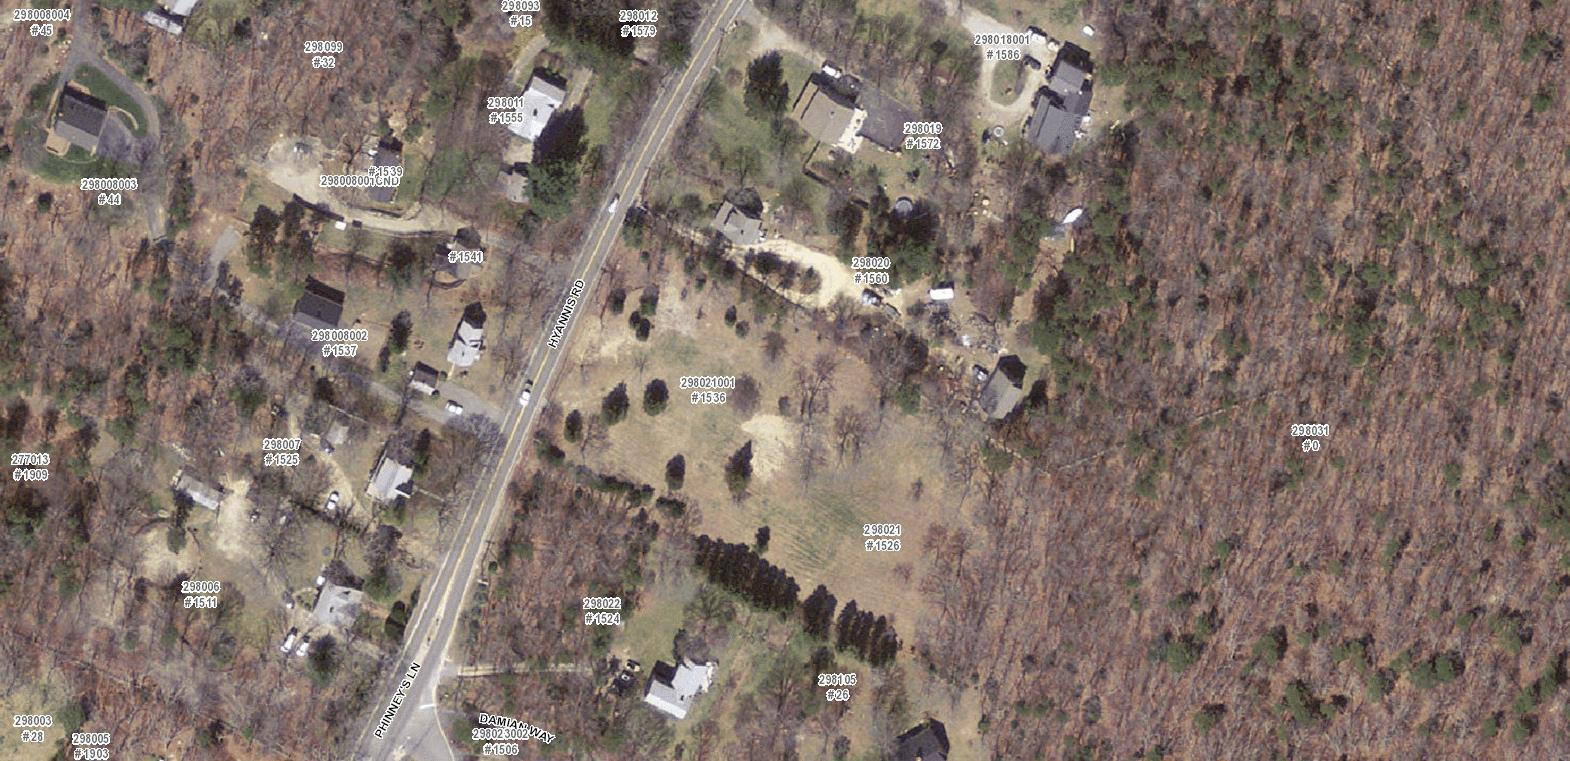 1526 1536 HYANNIS ROAD, BARNSTABLE, MA 02630